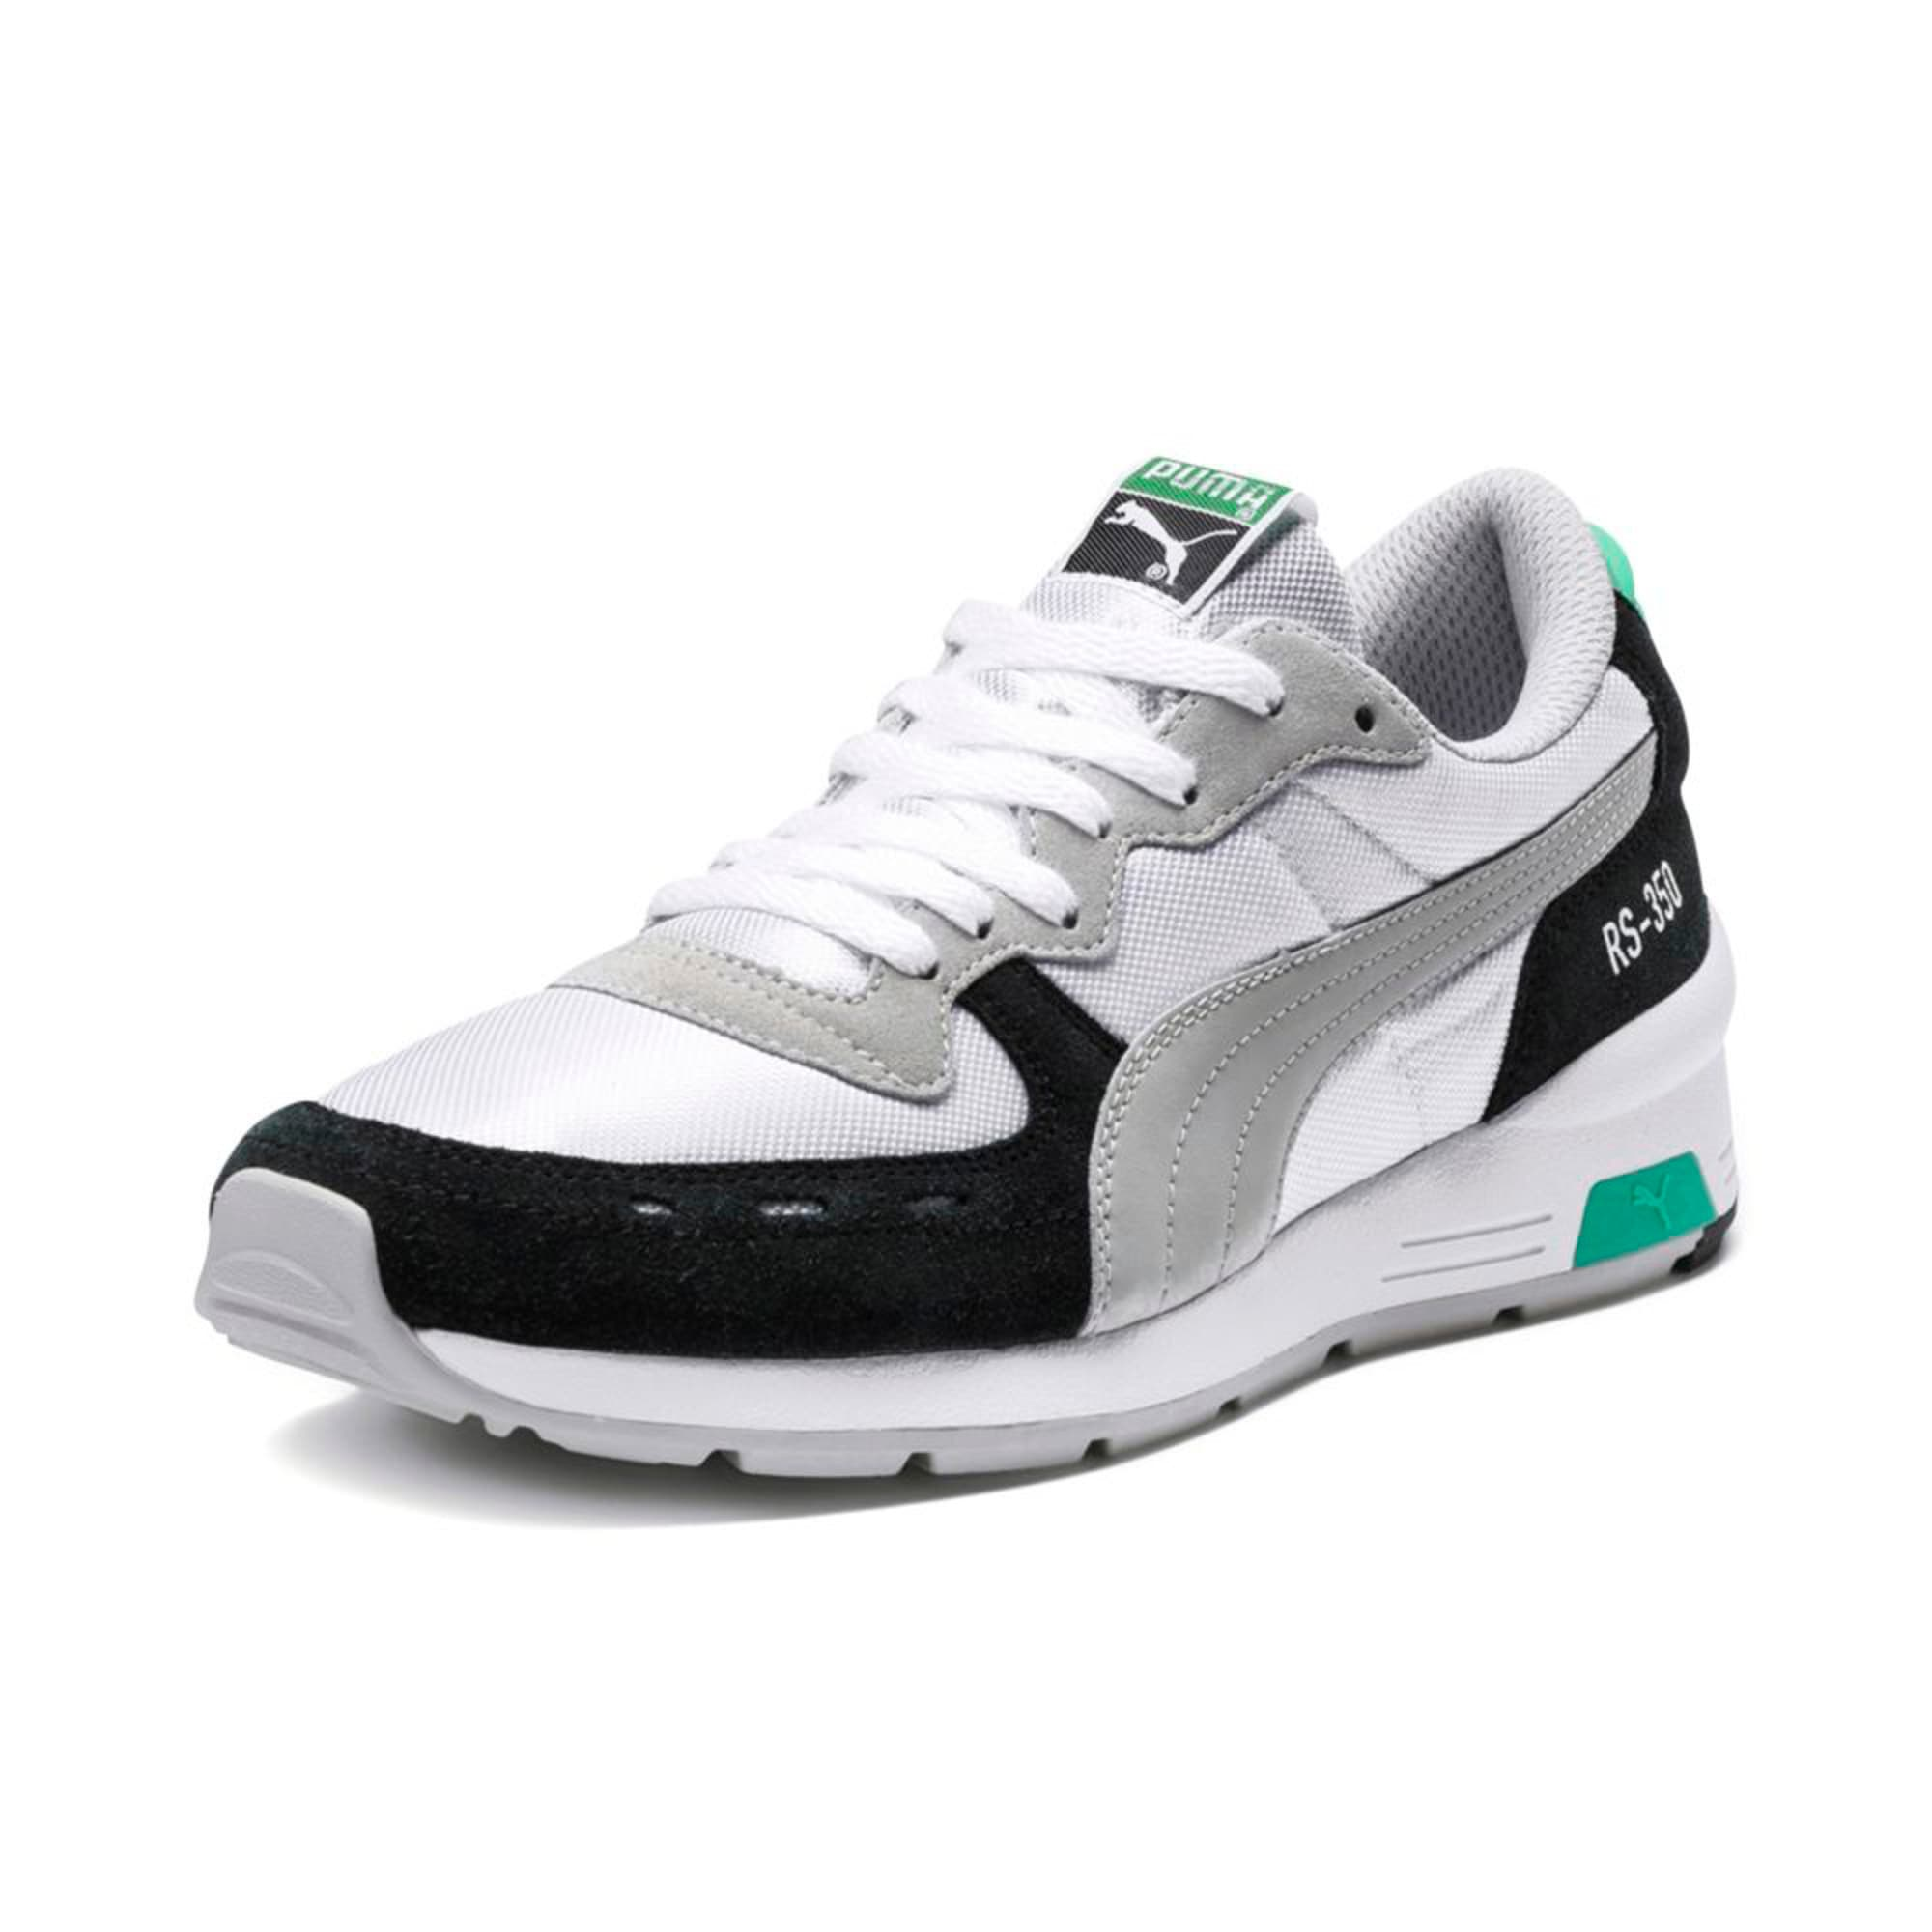 Thumbnail 1 of RS-350 Re-Invention Trainers, Black-GrayViolet-White, medium-IND